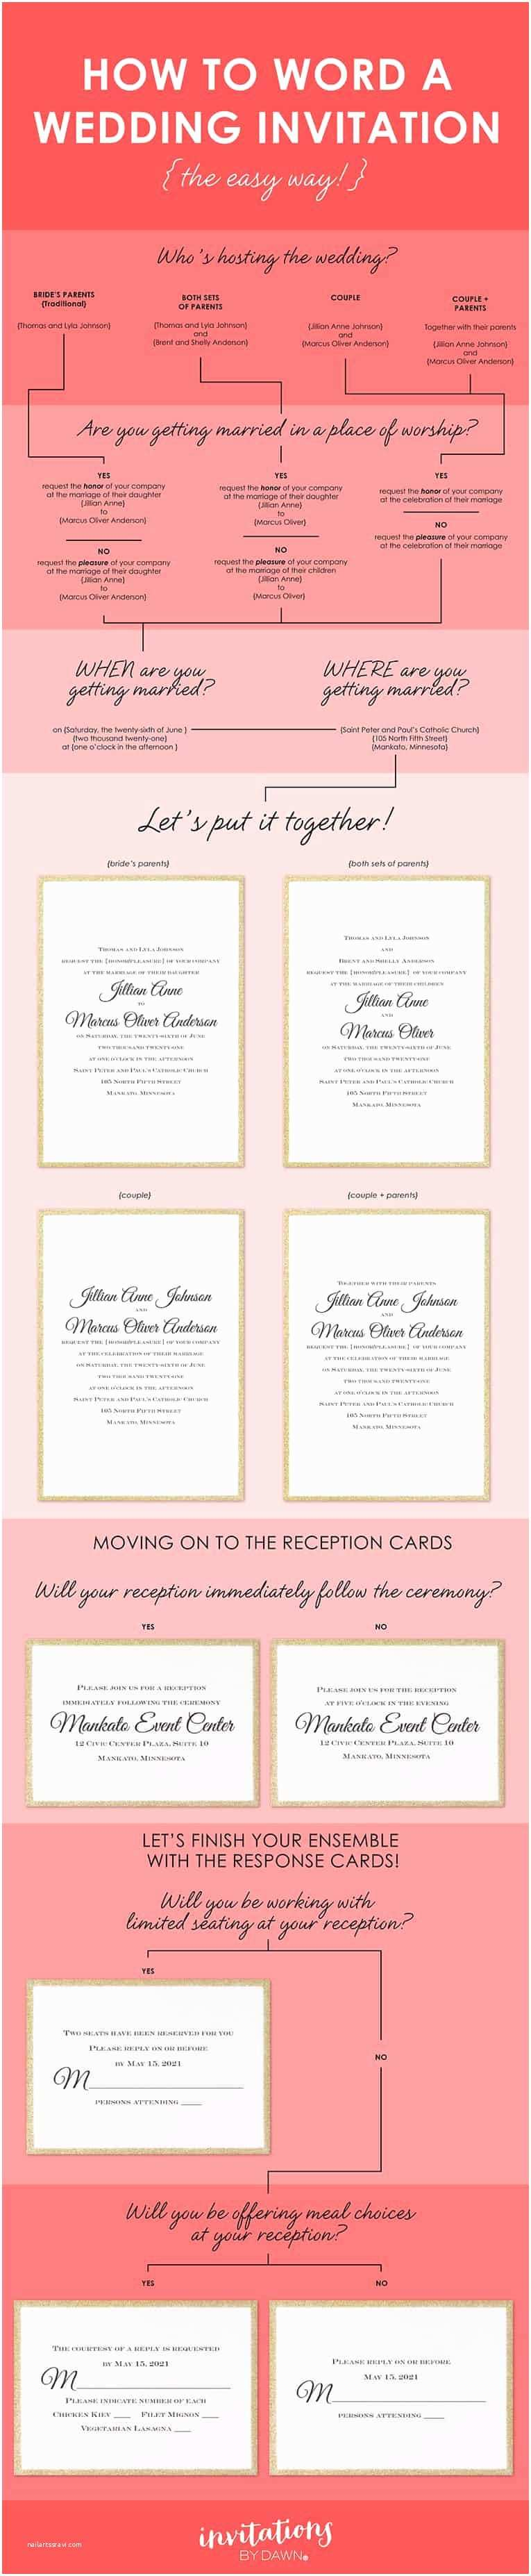 Best Wedding Invitations Ever Wedding Invitations Wording Best Photos Page 2 Of 5